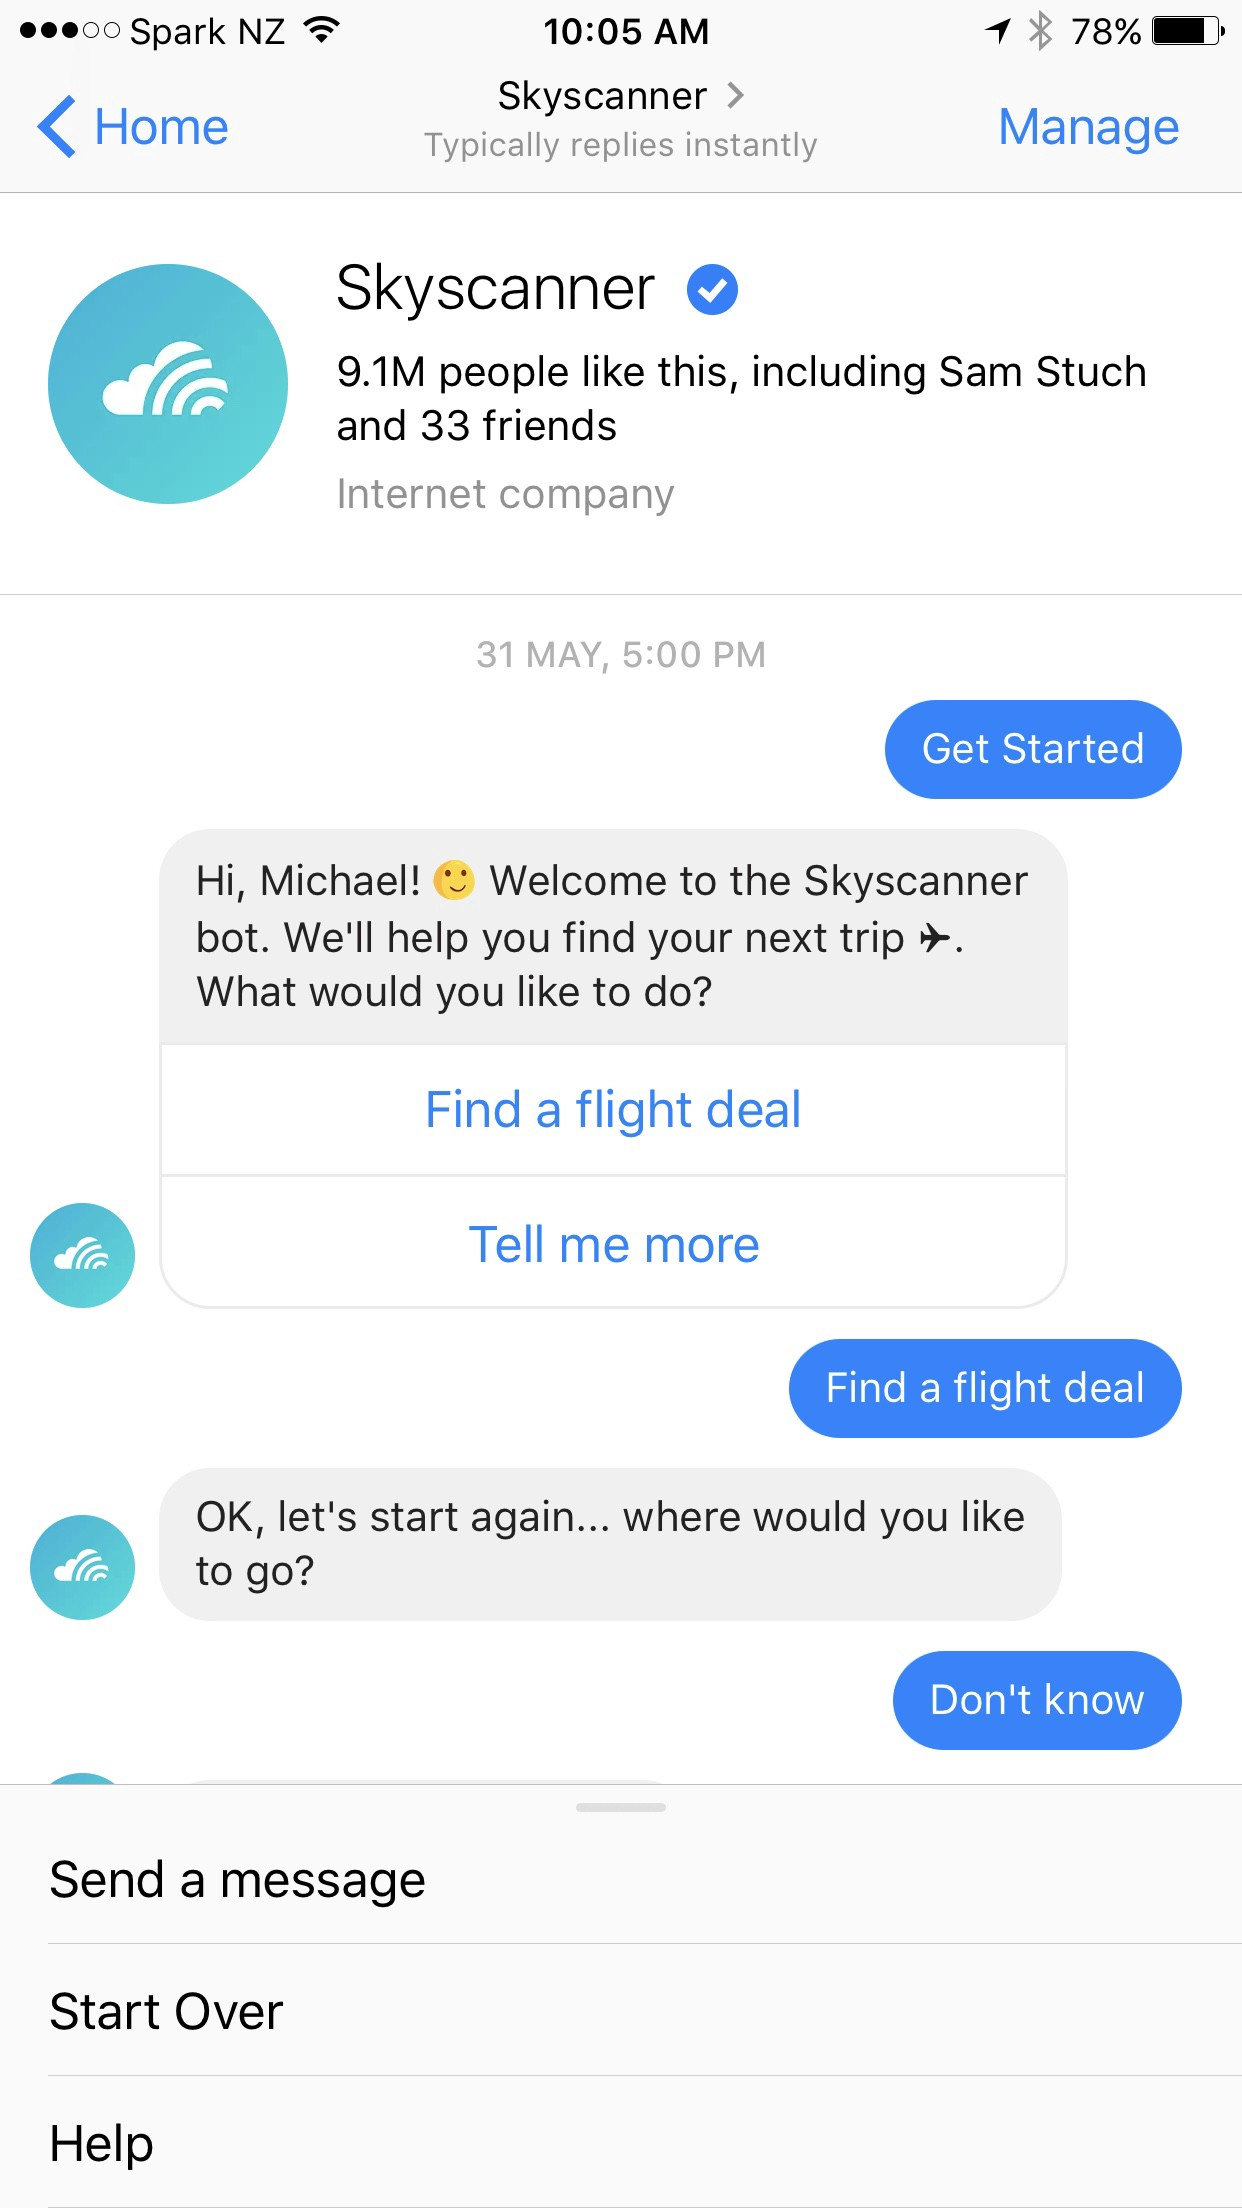 How chatbots can add immense value to every major industry